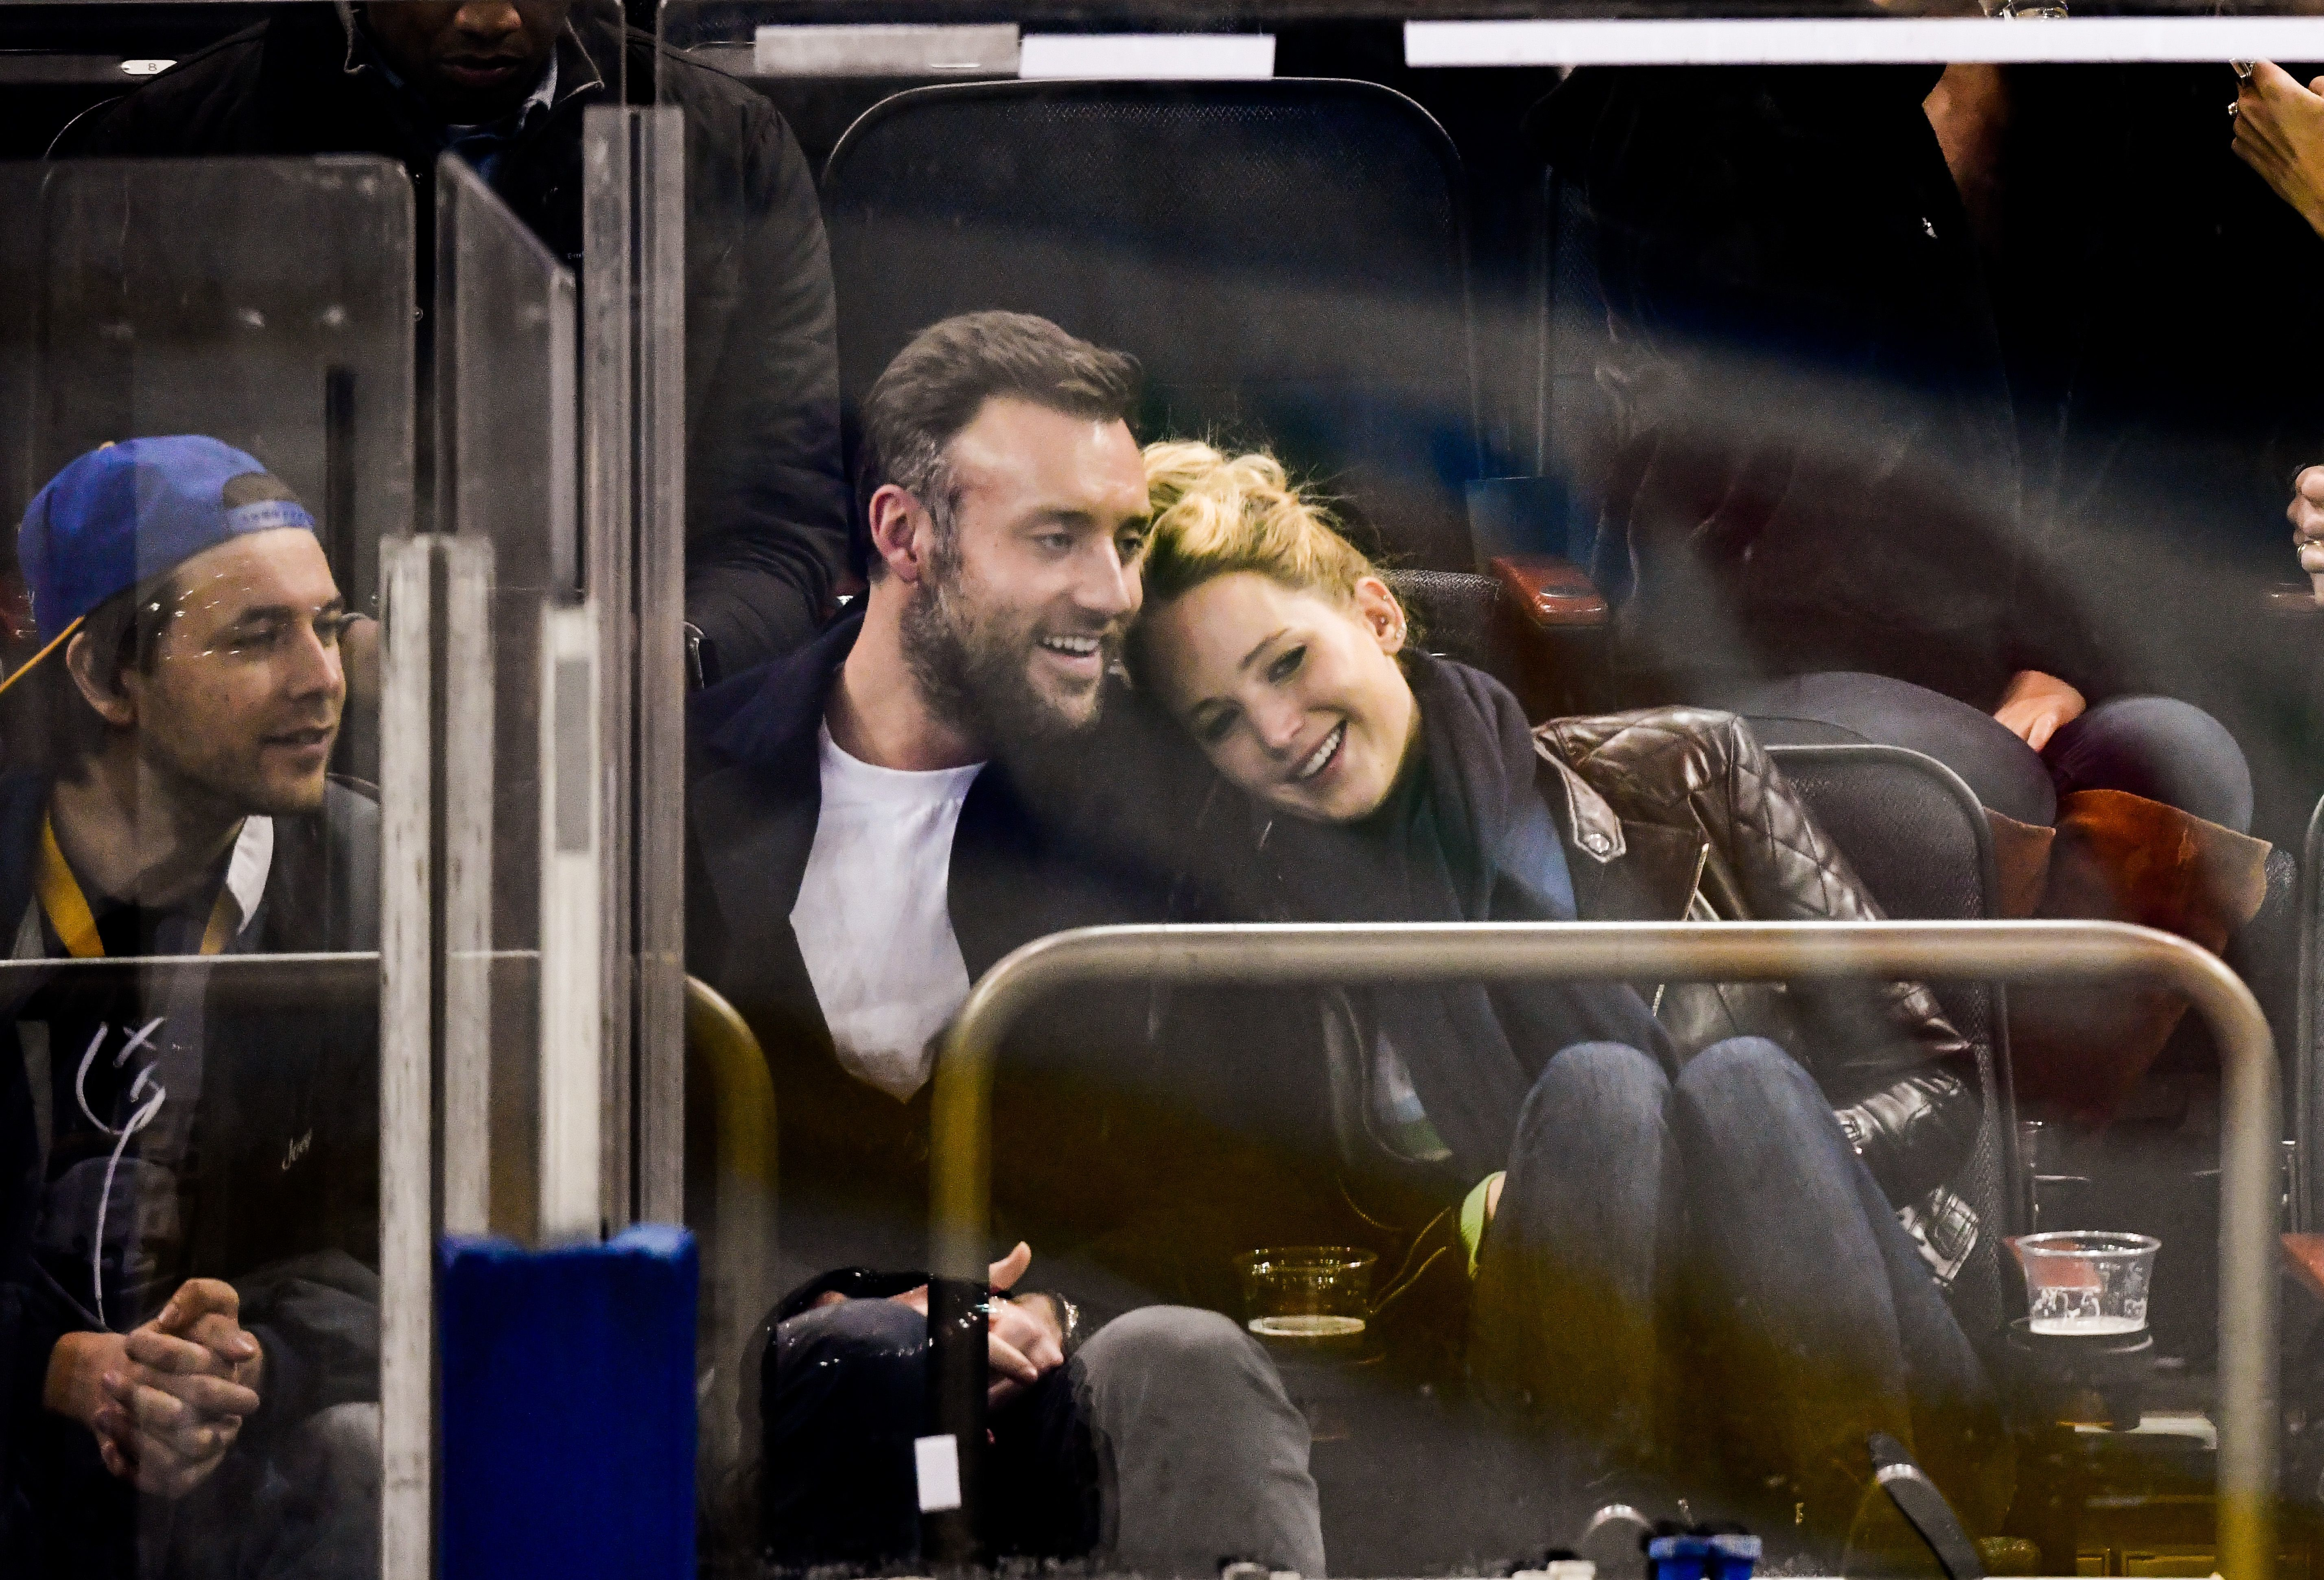 Jennifer Lawrence sparks rumors she and Cooke Maroney tied the knot, plus more celeb love life news for mid-September 2019